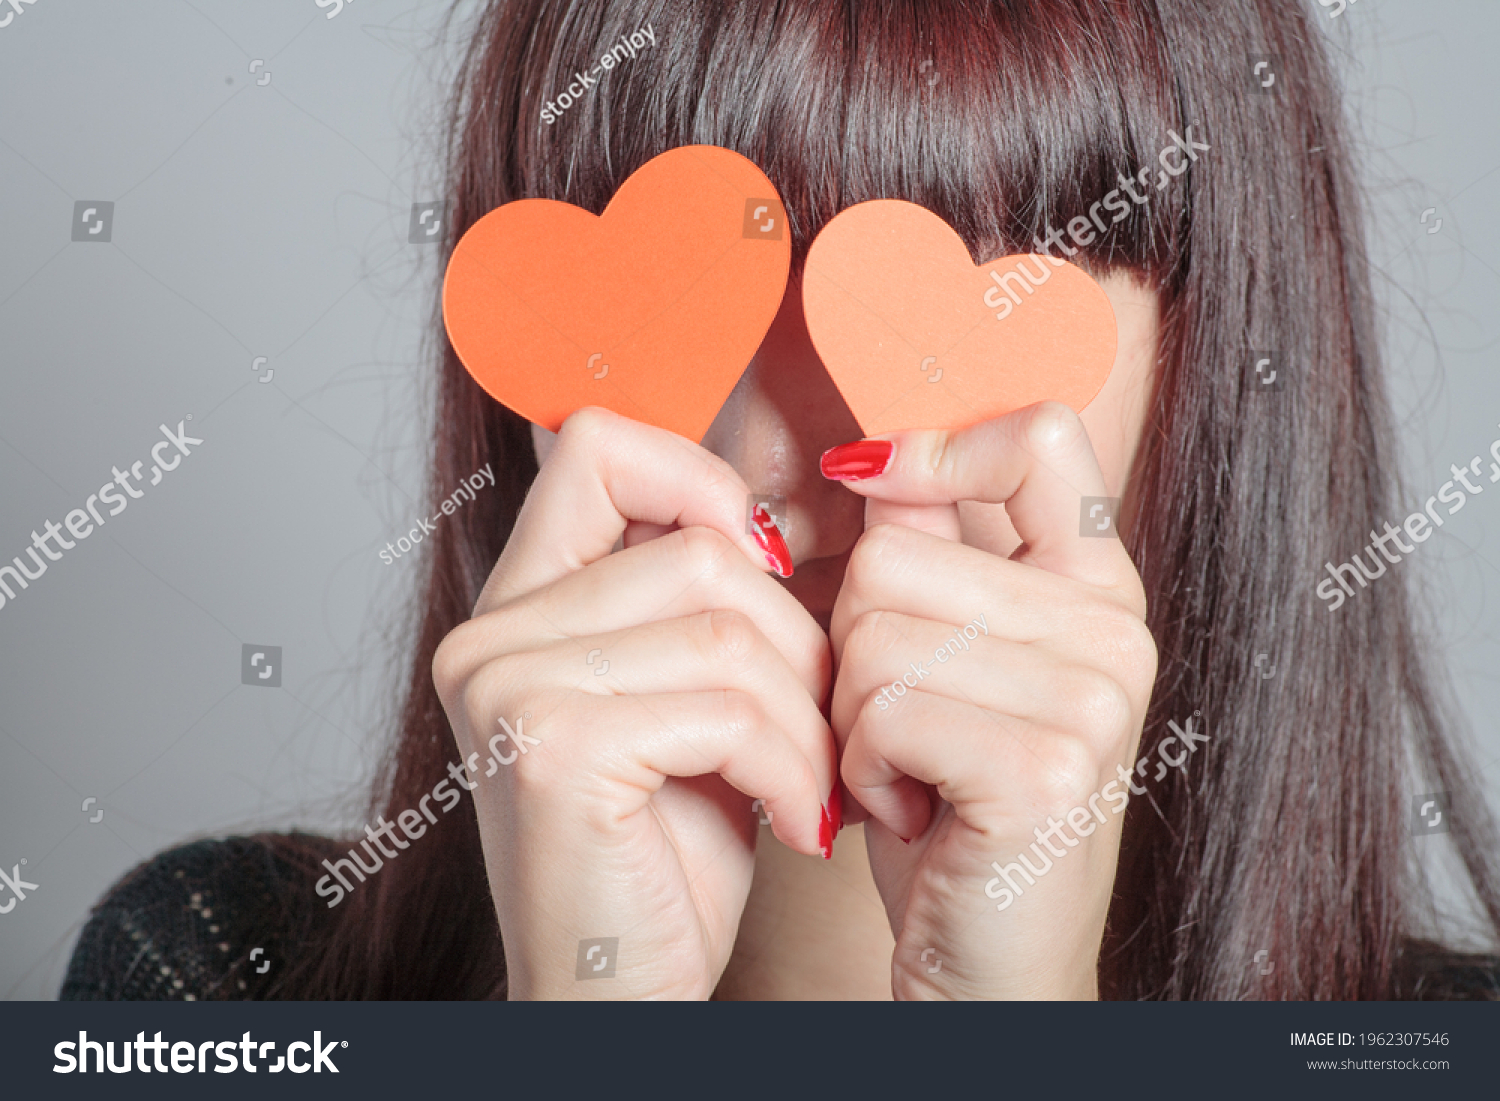 stock-photo-a-girl-covering-her-eyes-wit